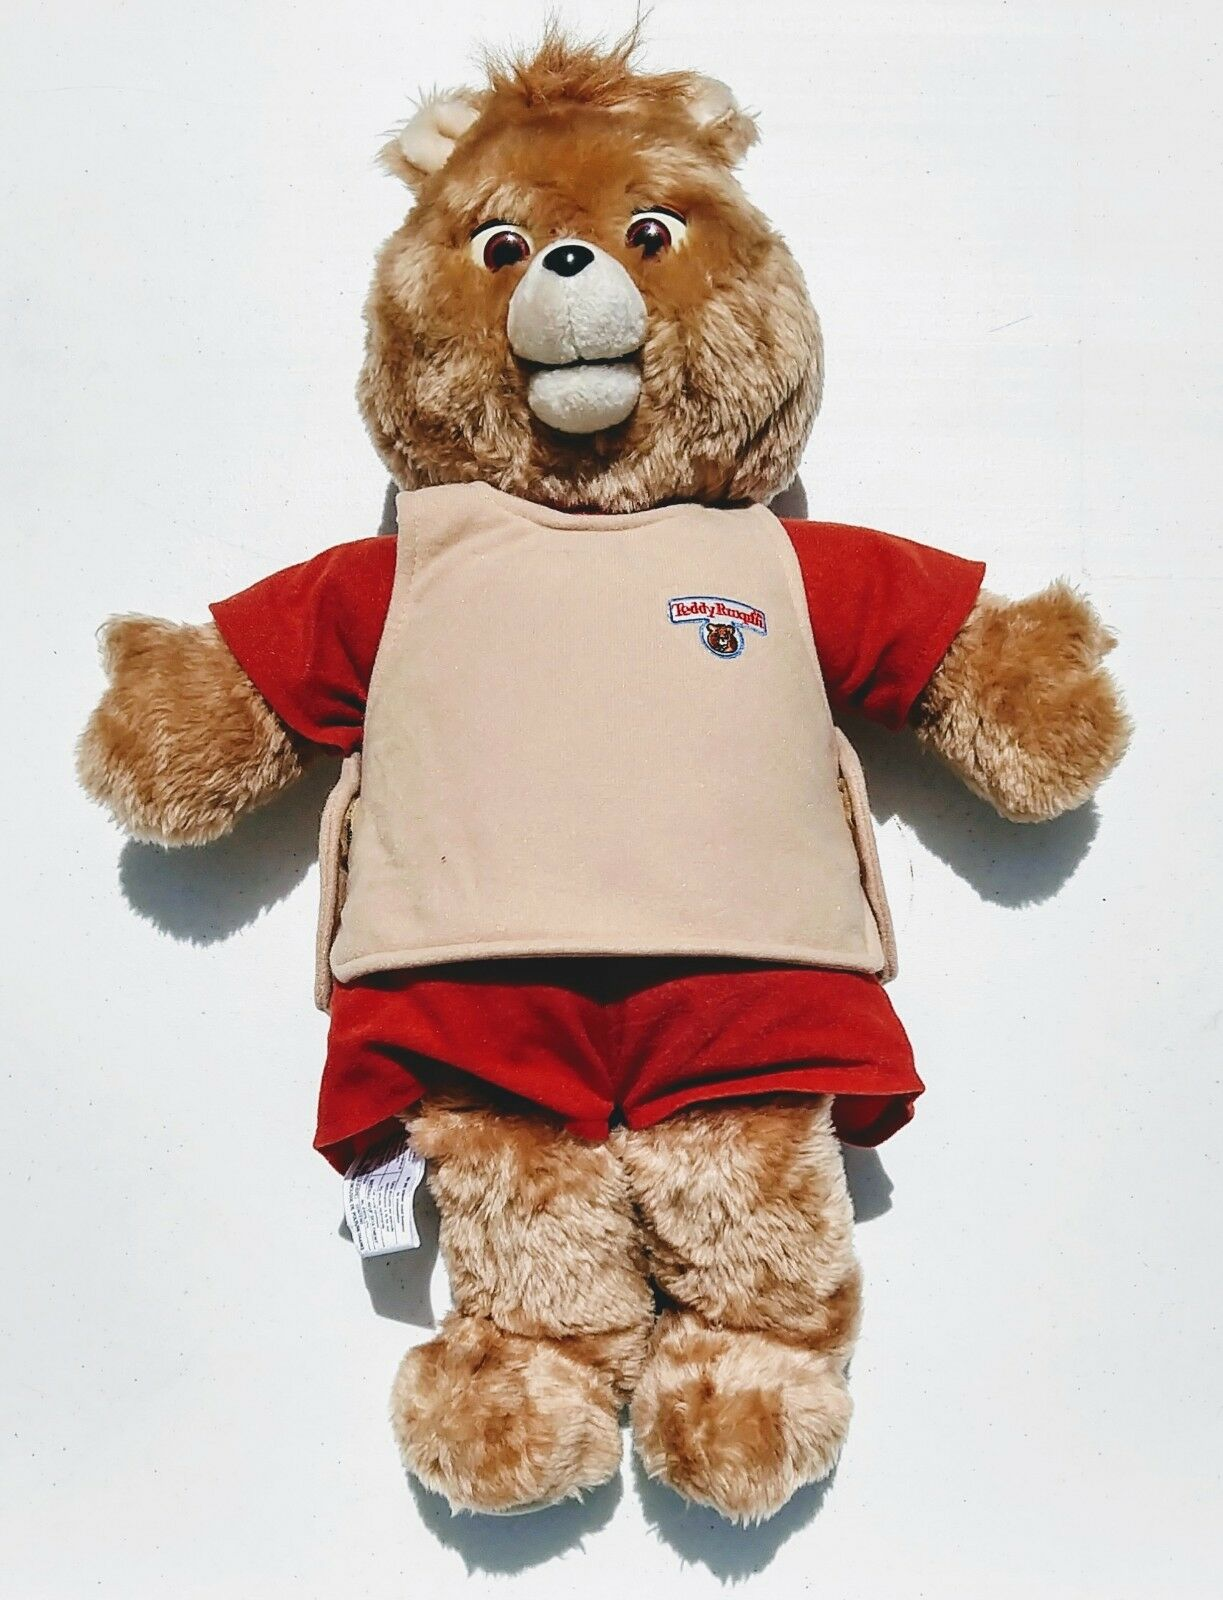 1985 World of Wonders Teddy Ruxpin with Christmas Summertime libros Tapes Outfits